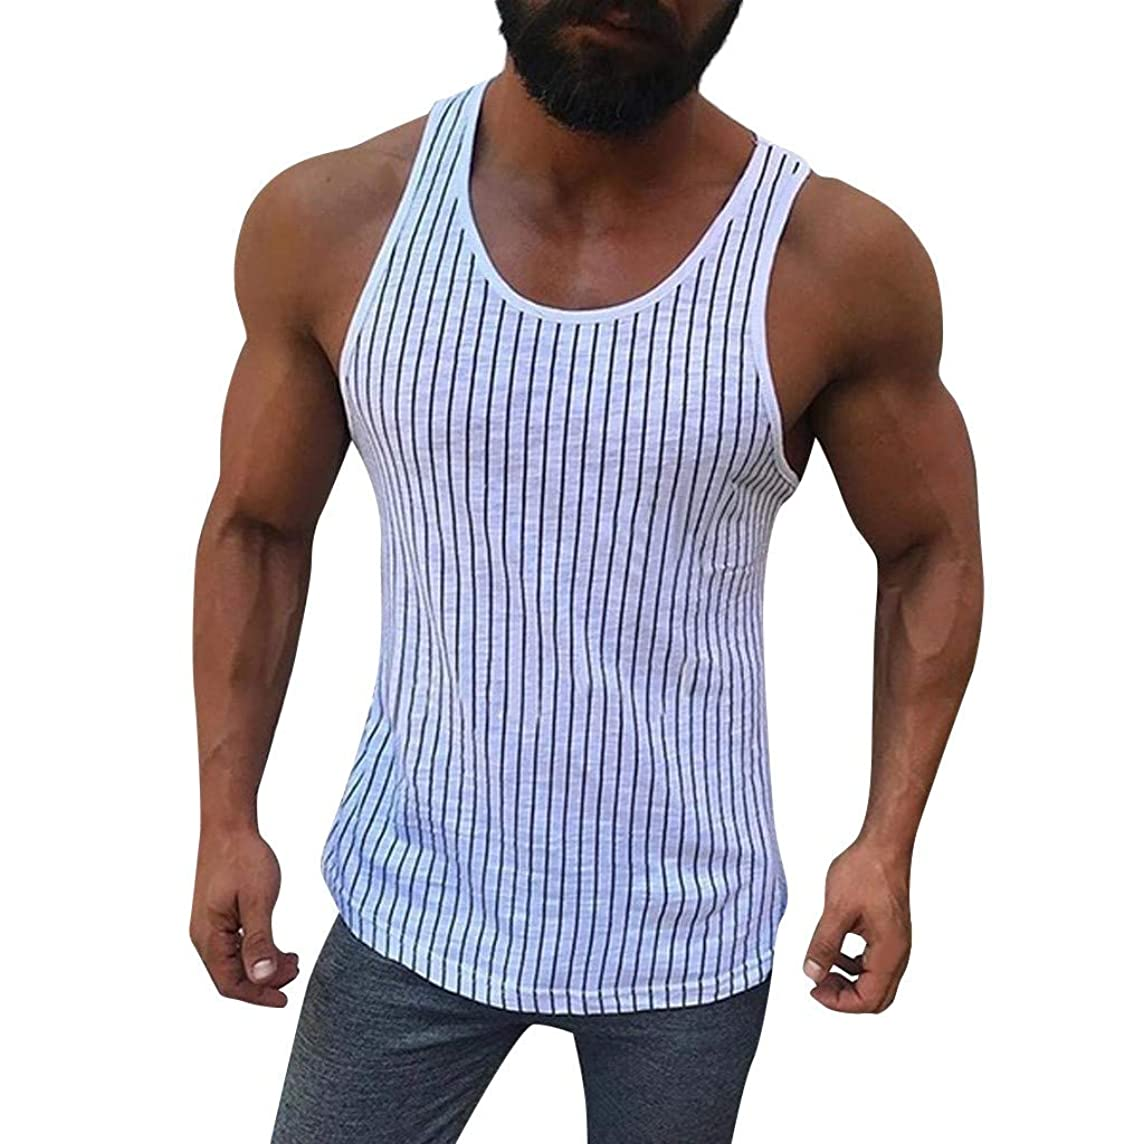 POQOQ Vest Tops Men Fitness Muscle Striped Print Sleeveless Bodybuilding